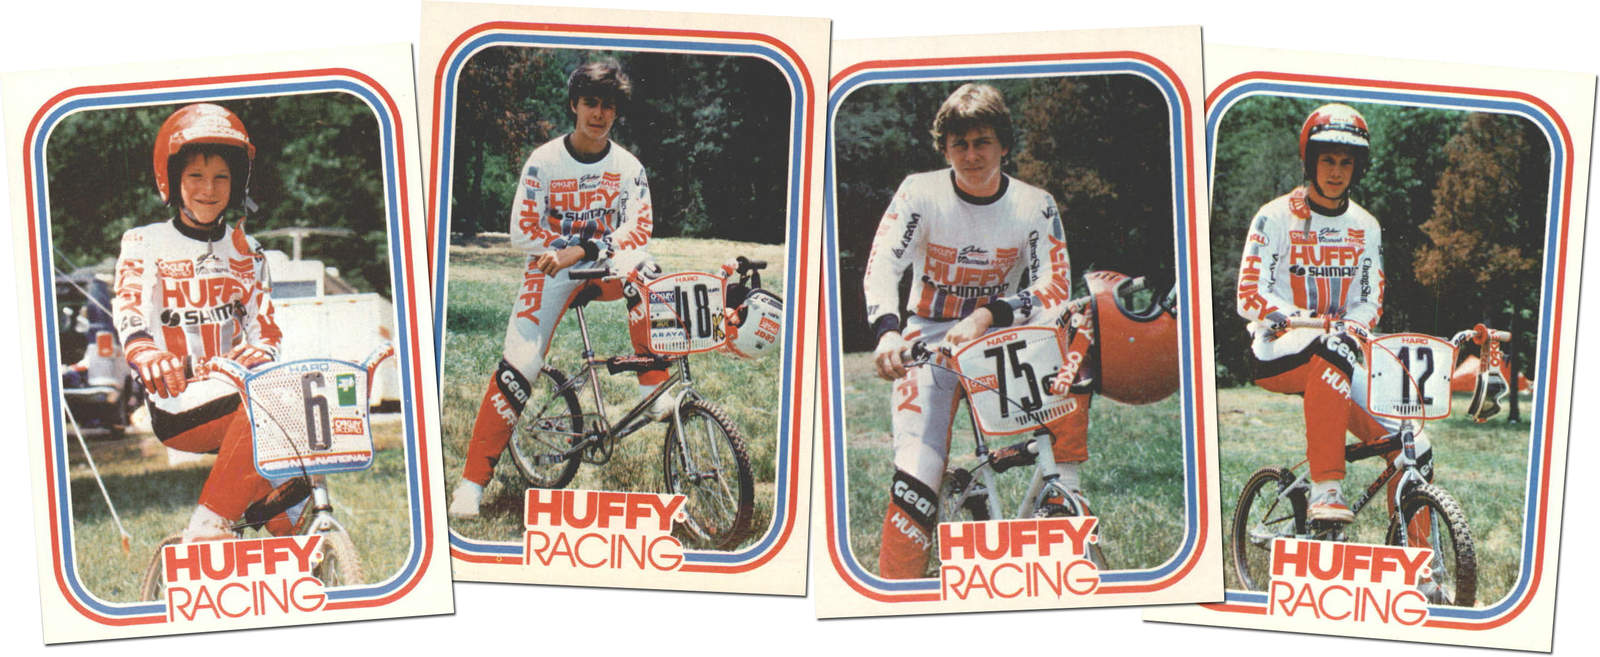 http://uploads.bmxmuseum.com/user-images/152/huffy25a0dc94184.jpg